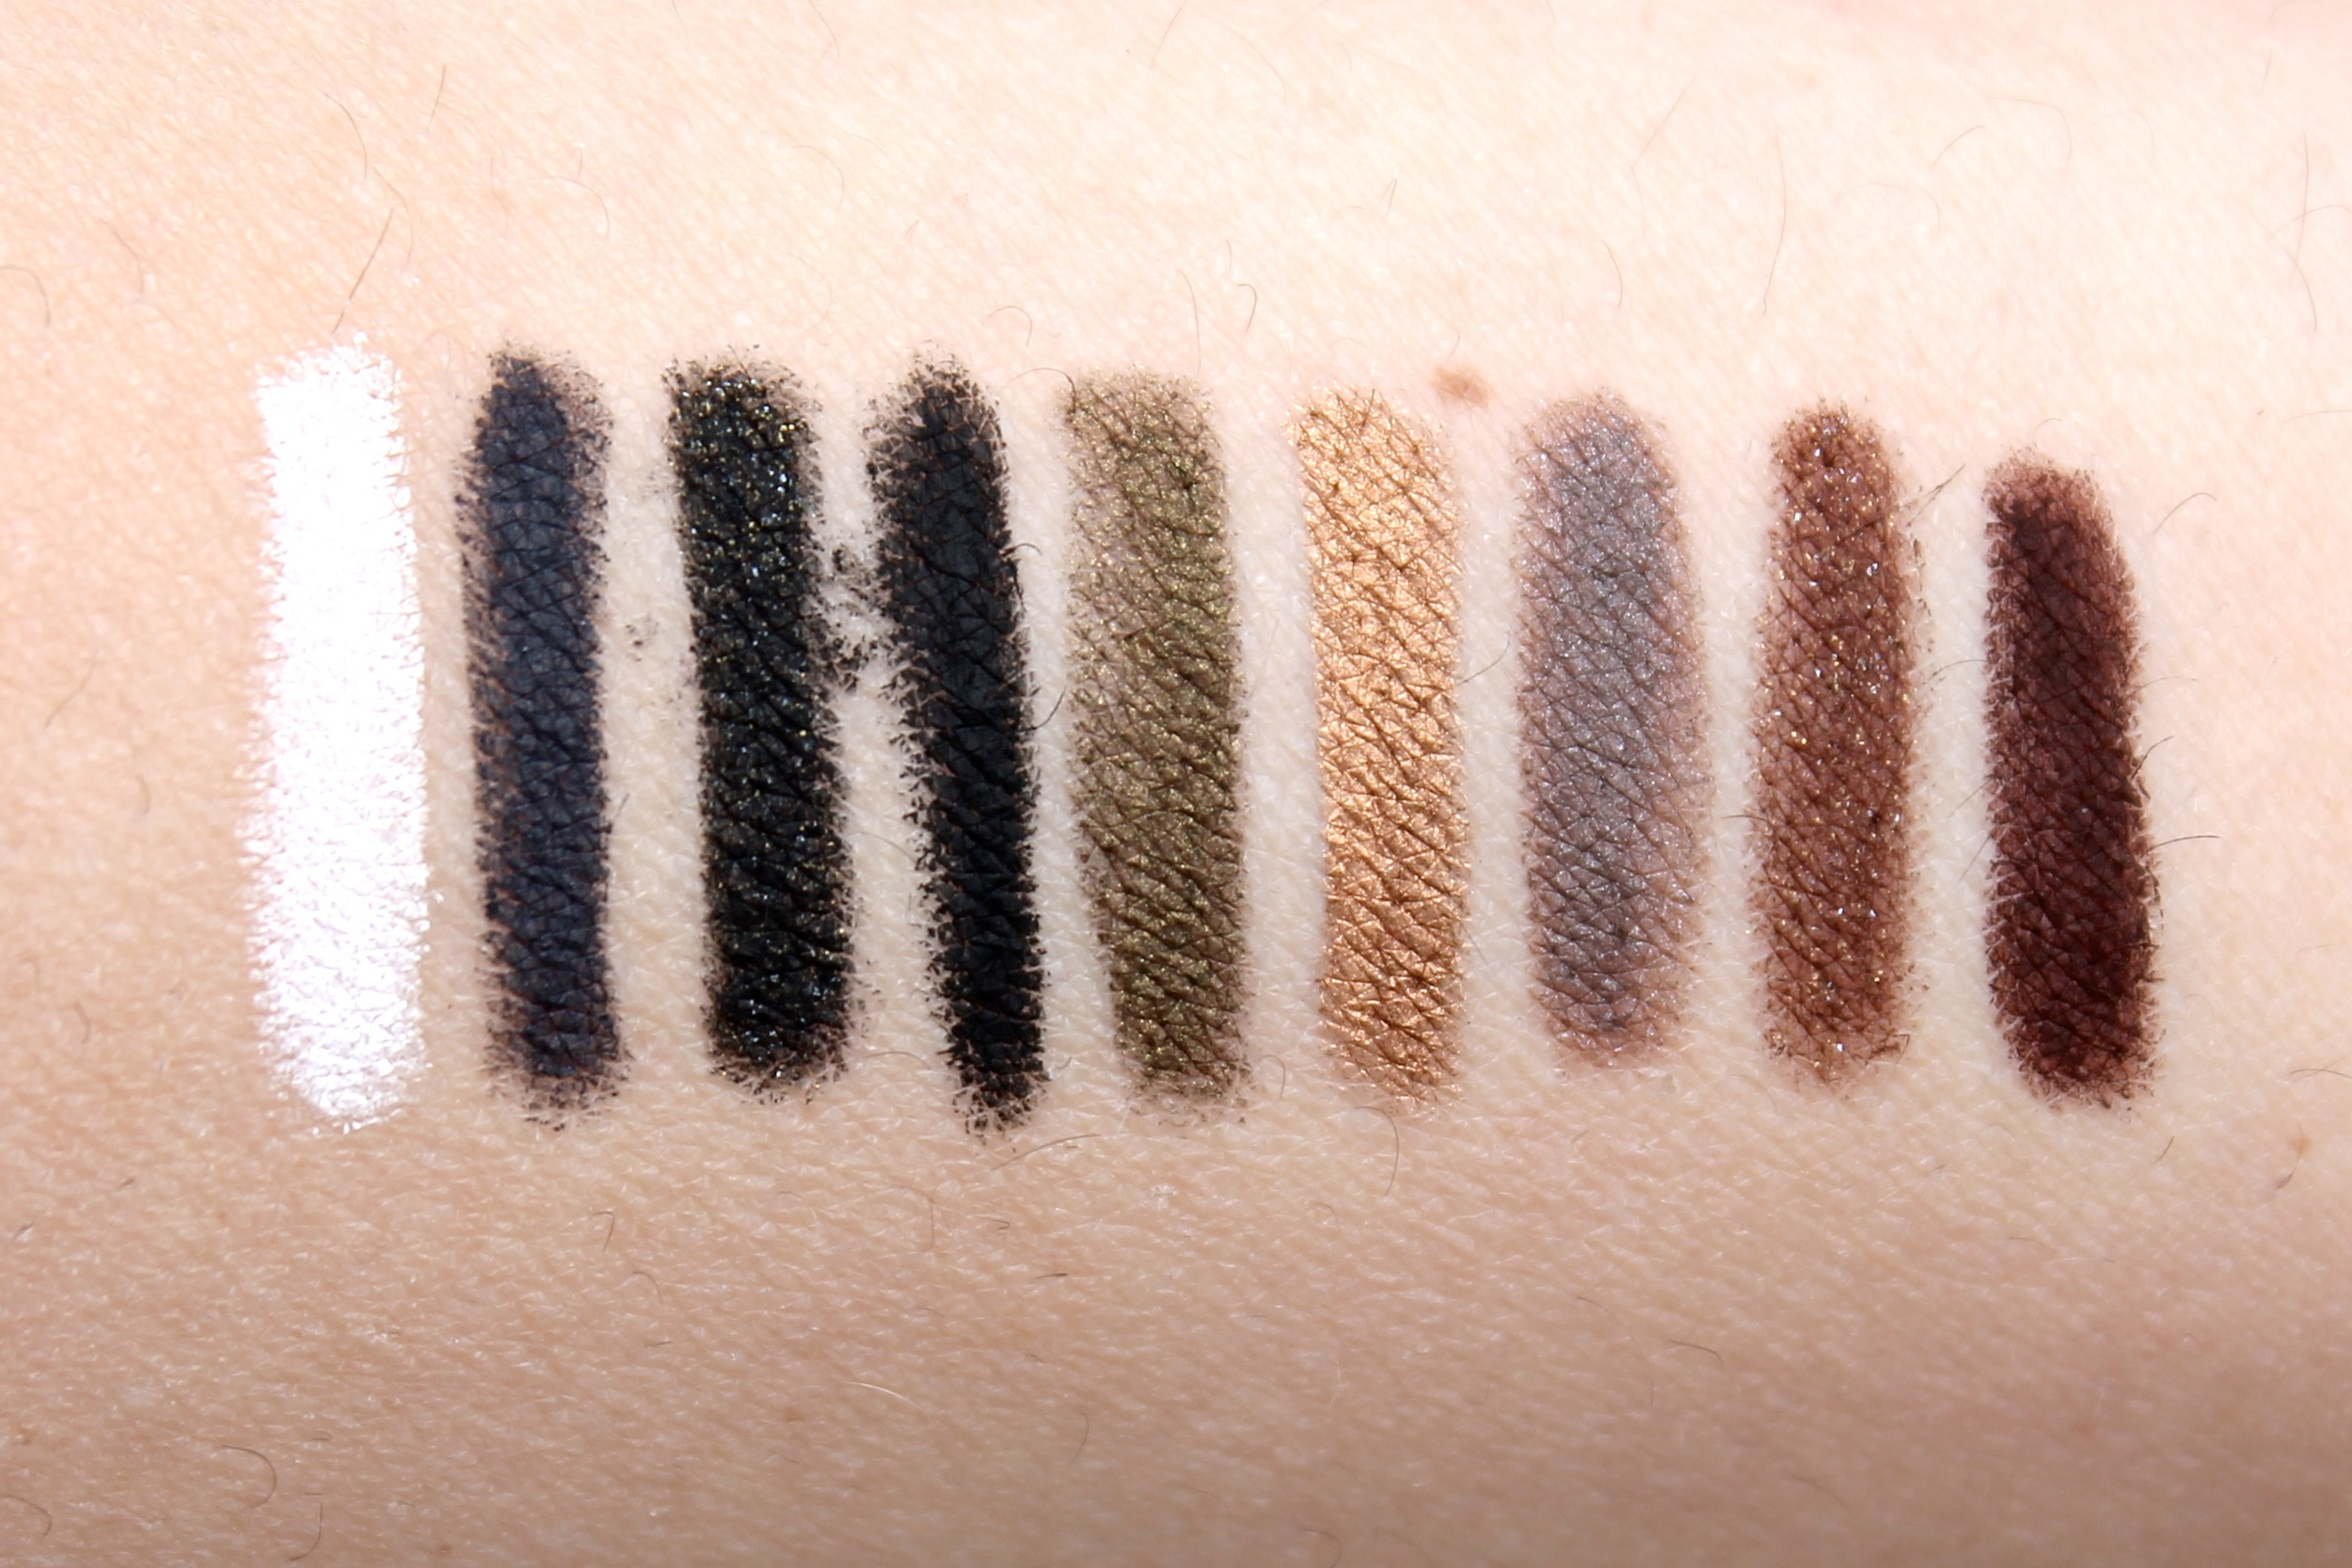 Swatched L->r /M-16, M-14, D-12, M-10, I-36, ME-42,S-50, D-62, and M-60